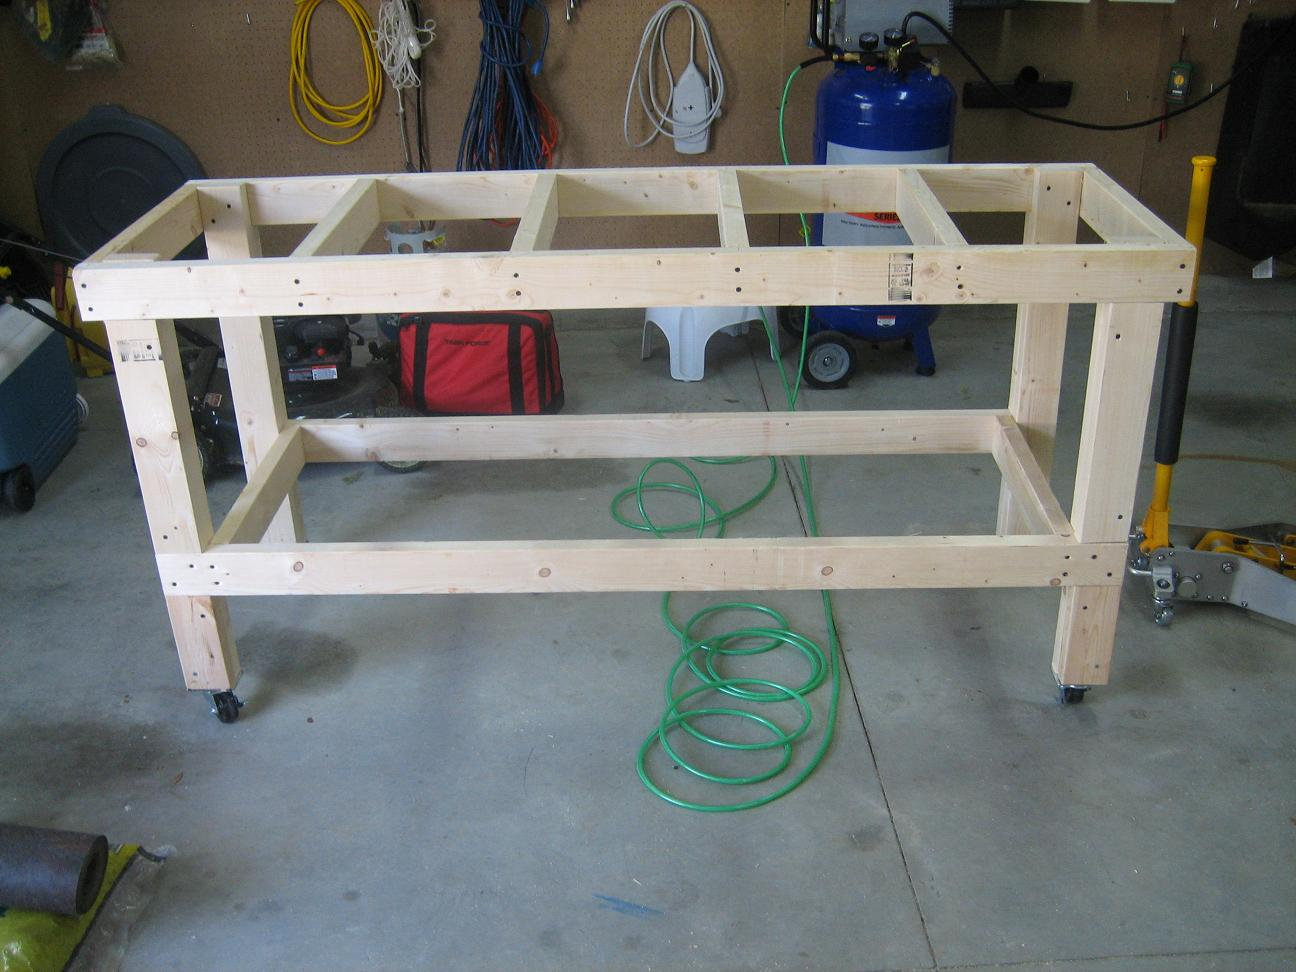 Eaa workbench completed andrew 39 s rv 7 build log for Working table design ideas